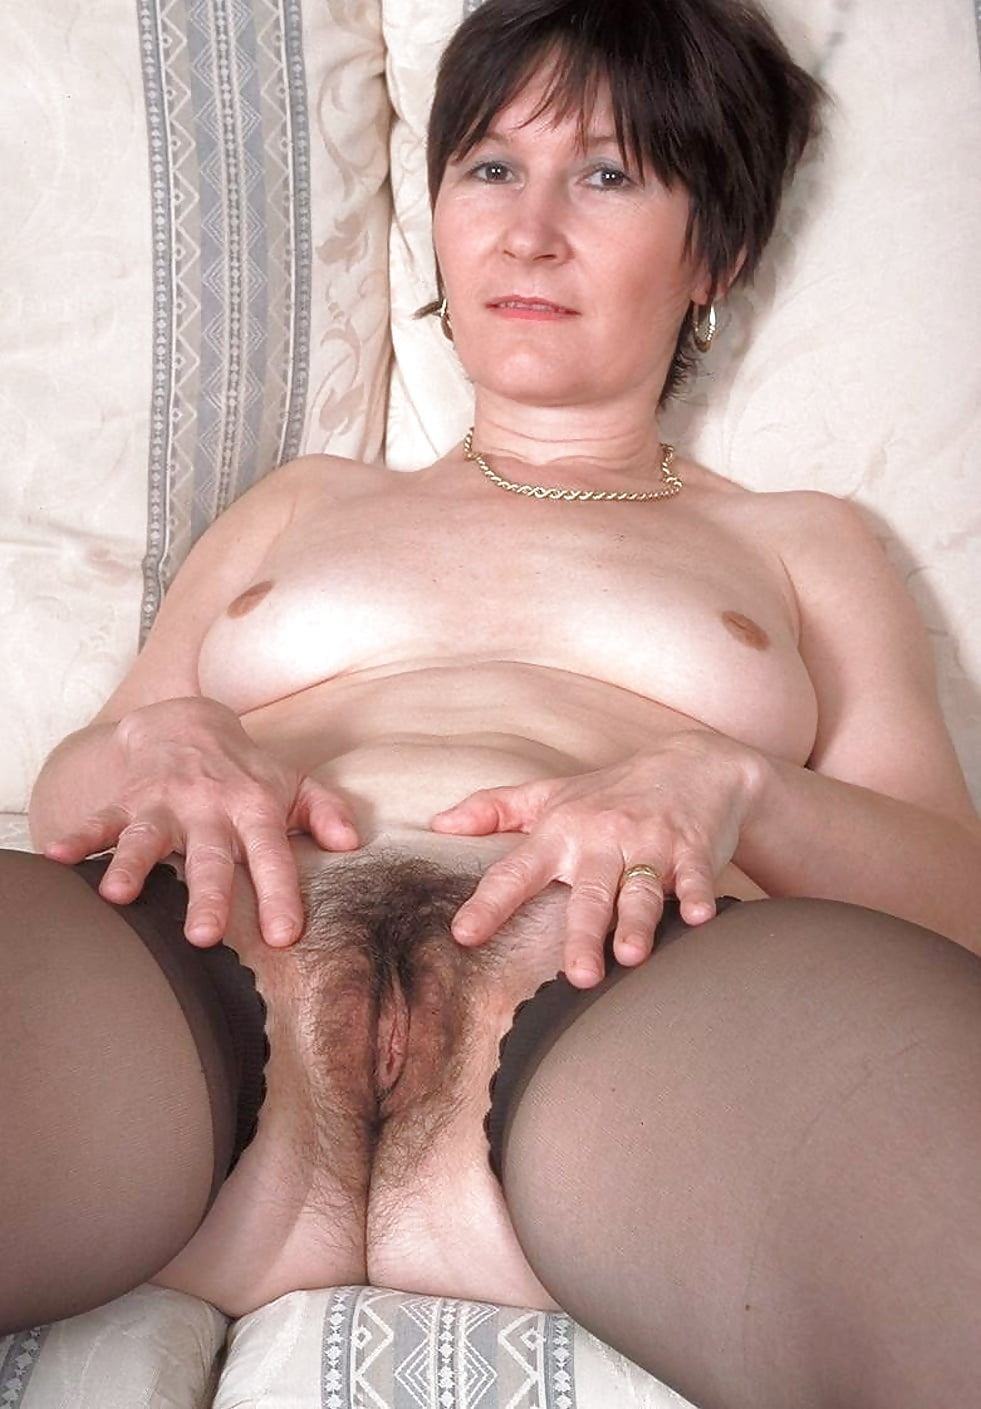 Moms hairy pussy pictures